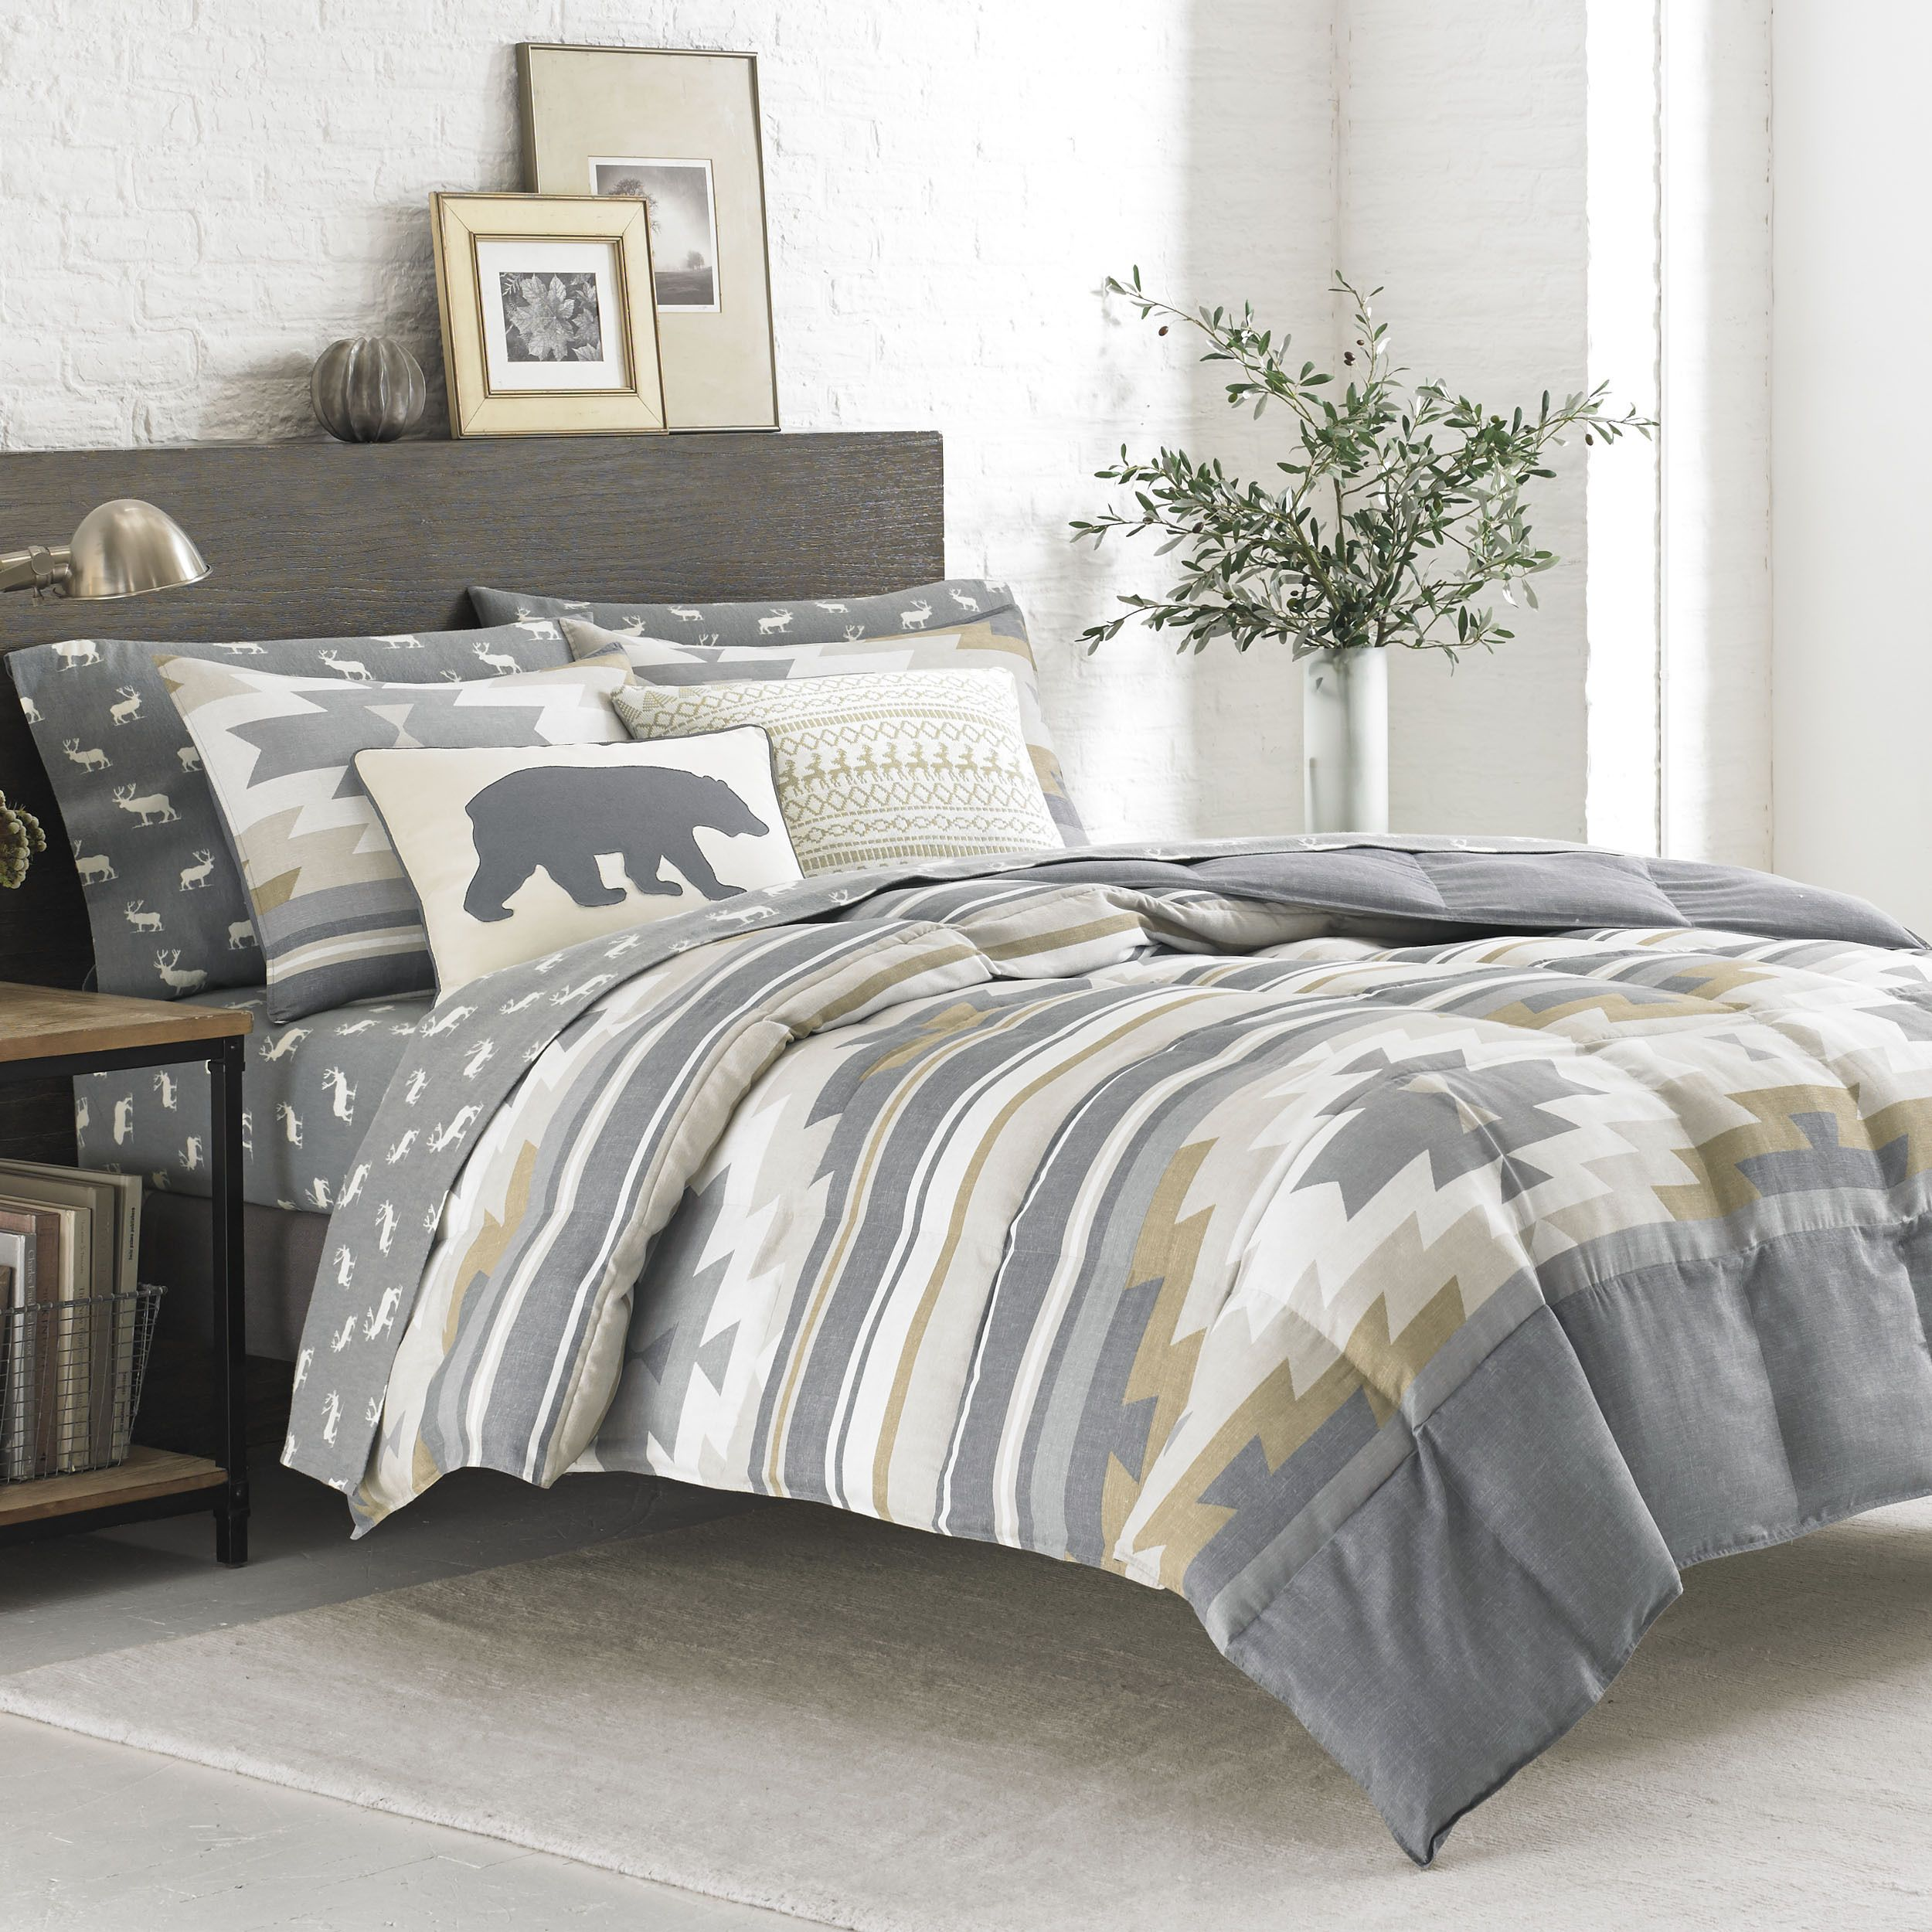 Overstock Com Online Shopping Bedding Furniture Electronics Jewelry Clothing More Comforter Sets Cool Comforters Best Bedding Sets